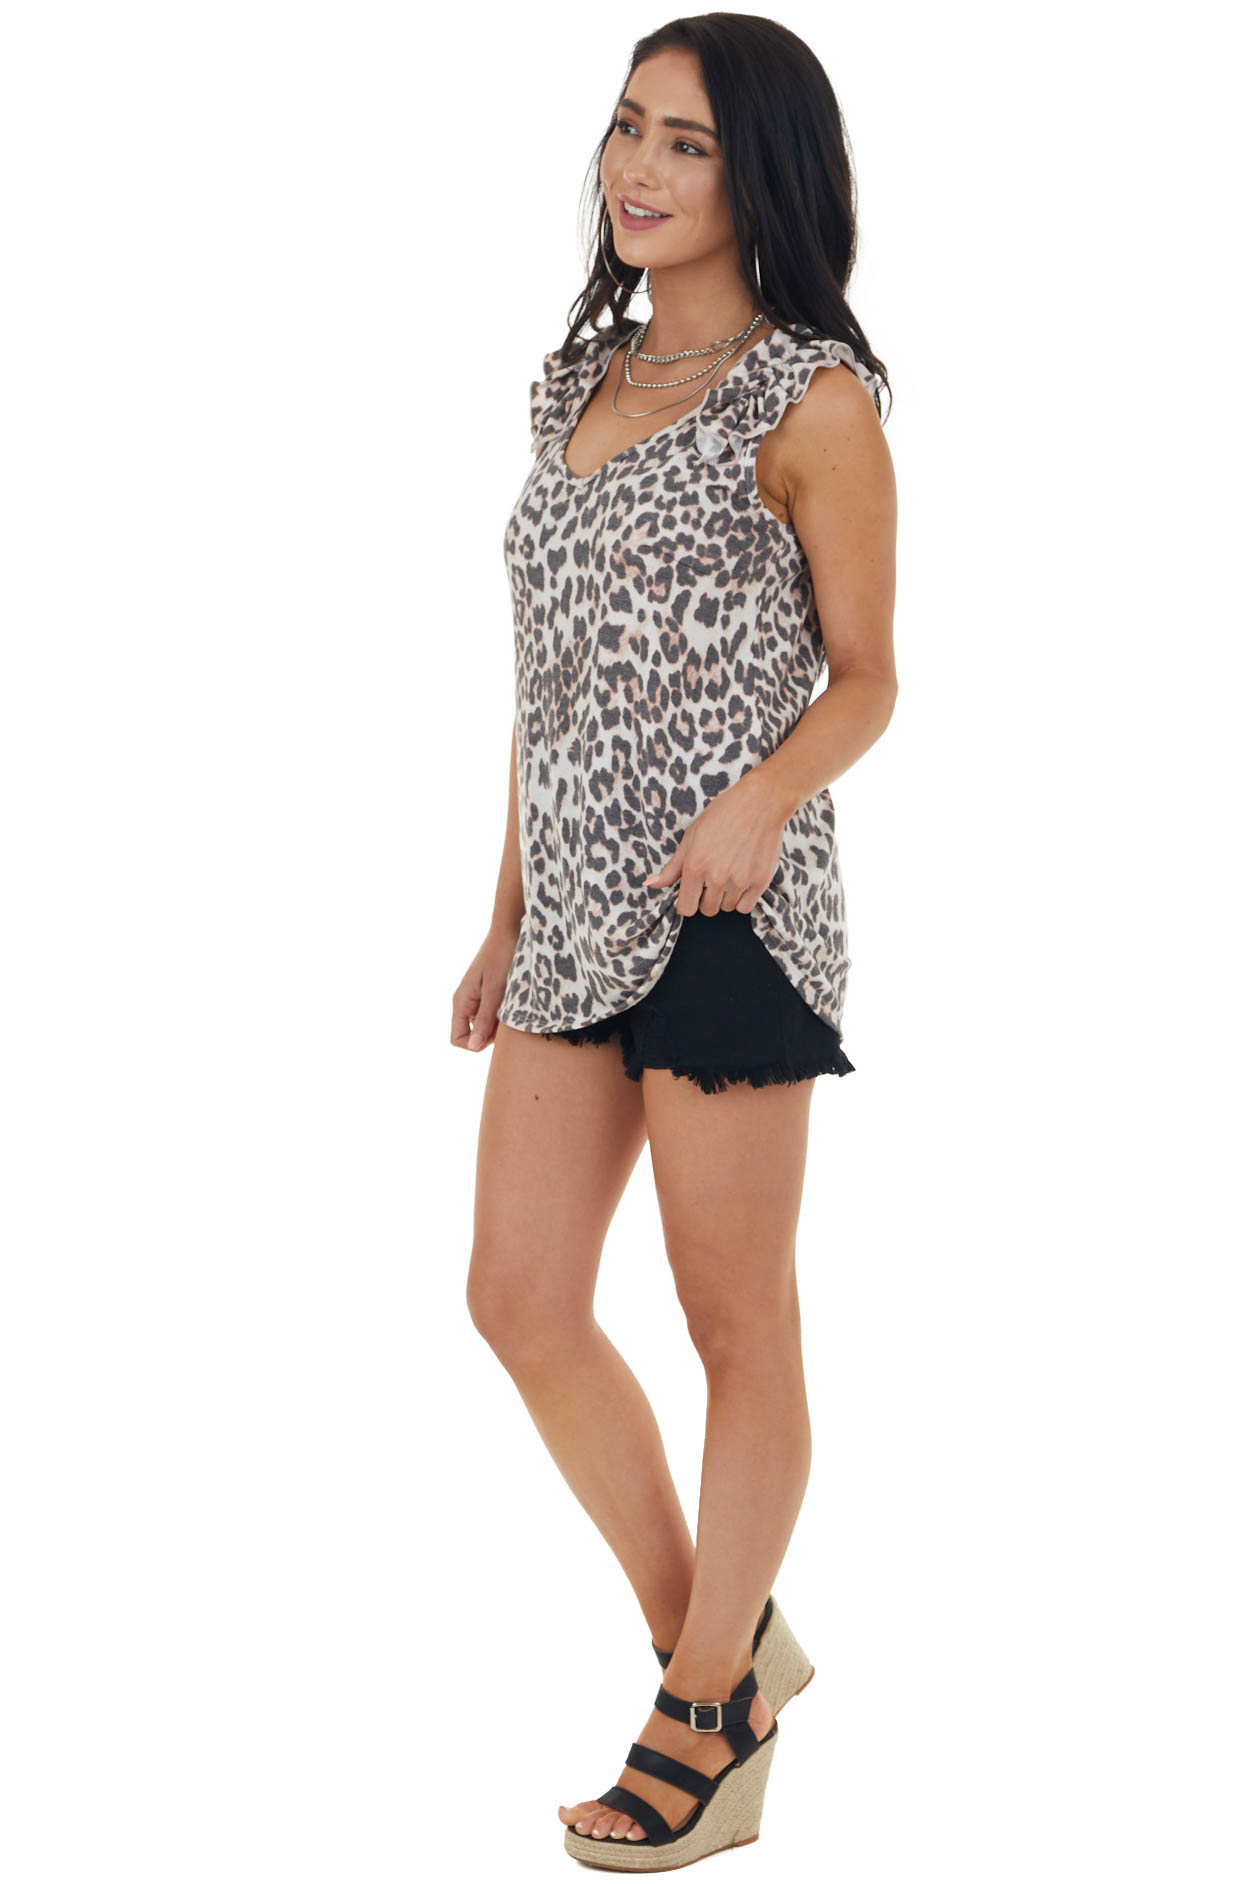 Vanilla Leopard Print Sleeveless Knit Top with Ruffles